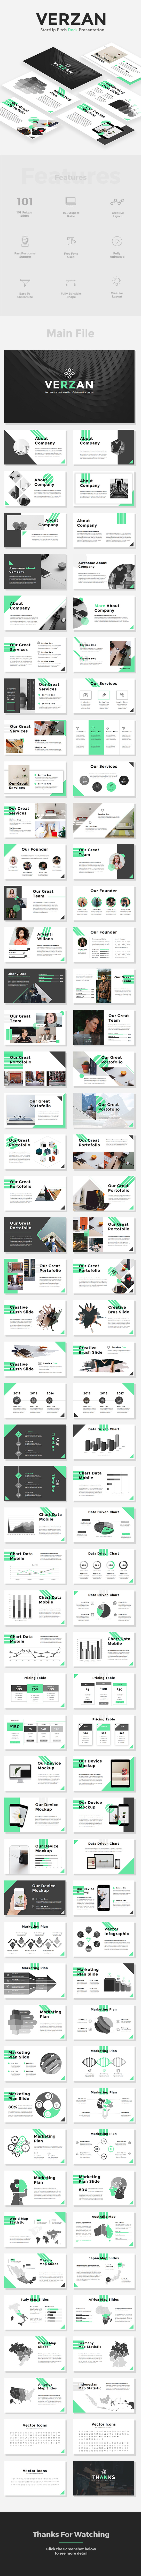 GraphicRiver Verzan StartUp Pitch Deck Powerpoint Templates 20947769